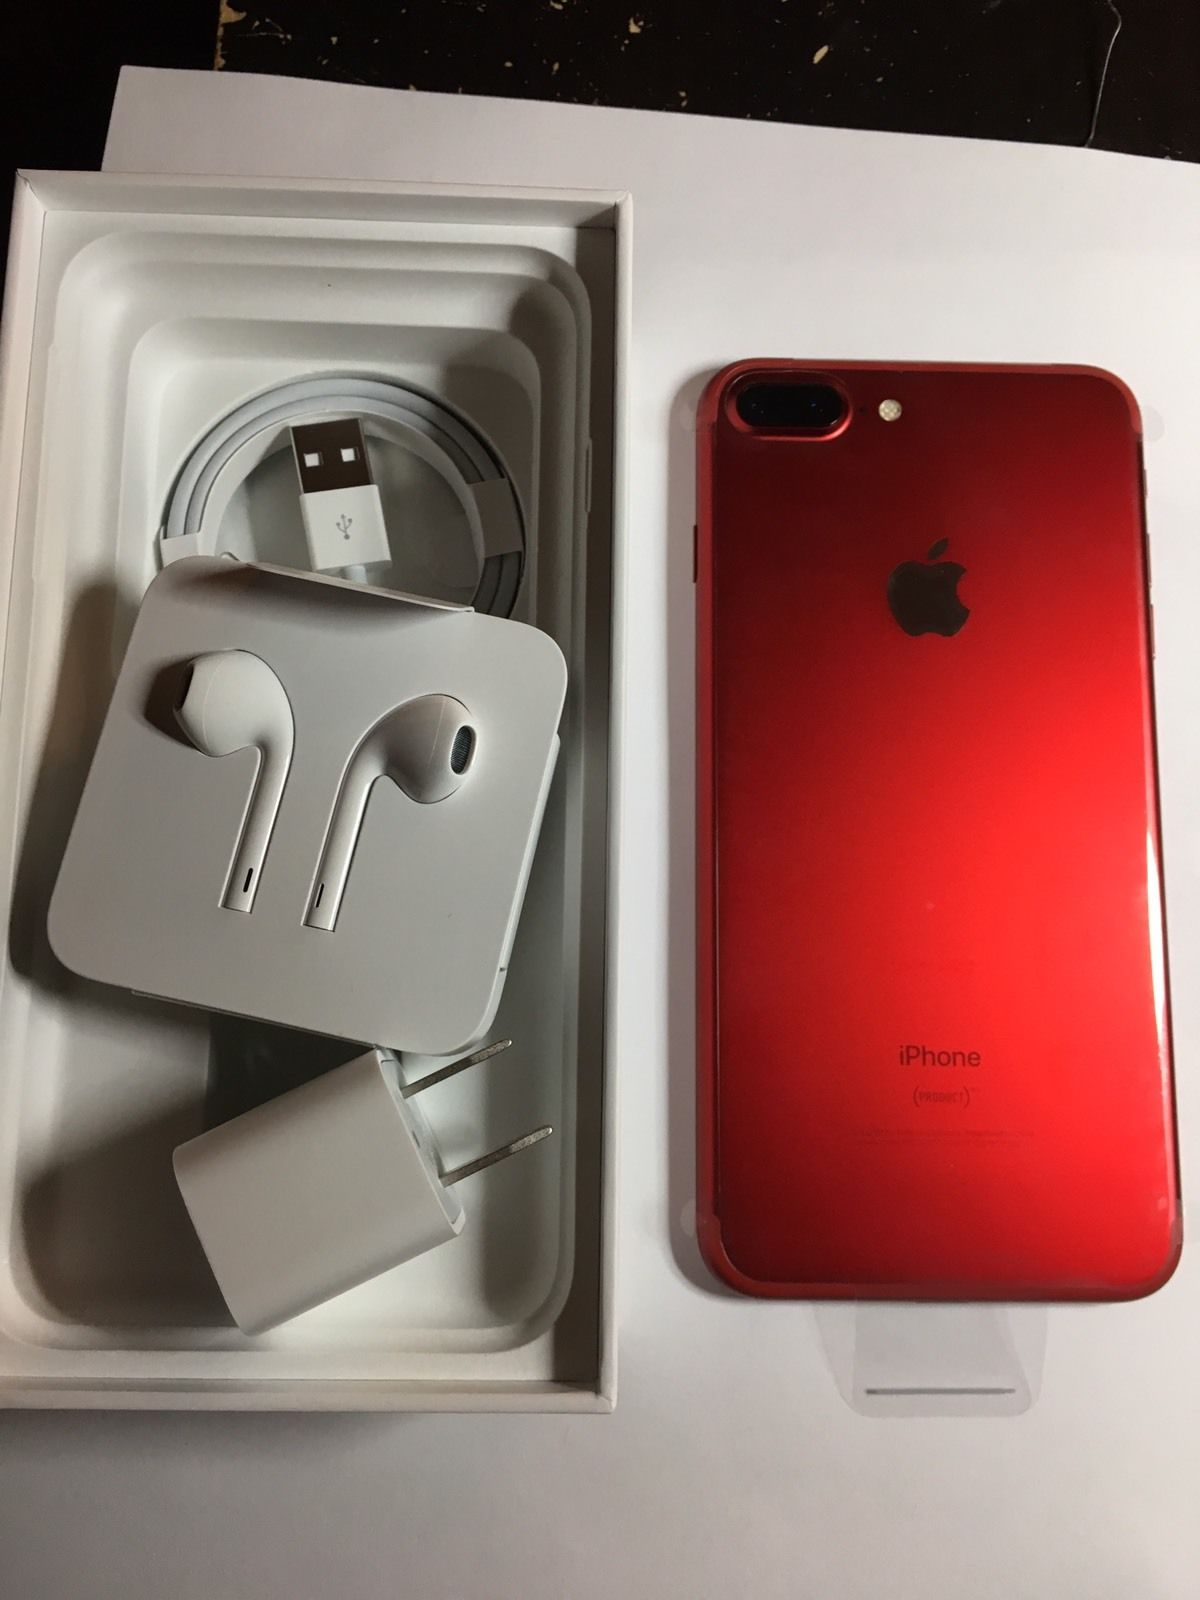 Apple iPhone 7 Plus (PRODUCT)RED Special Edition